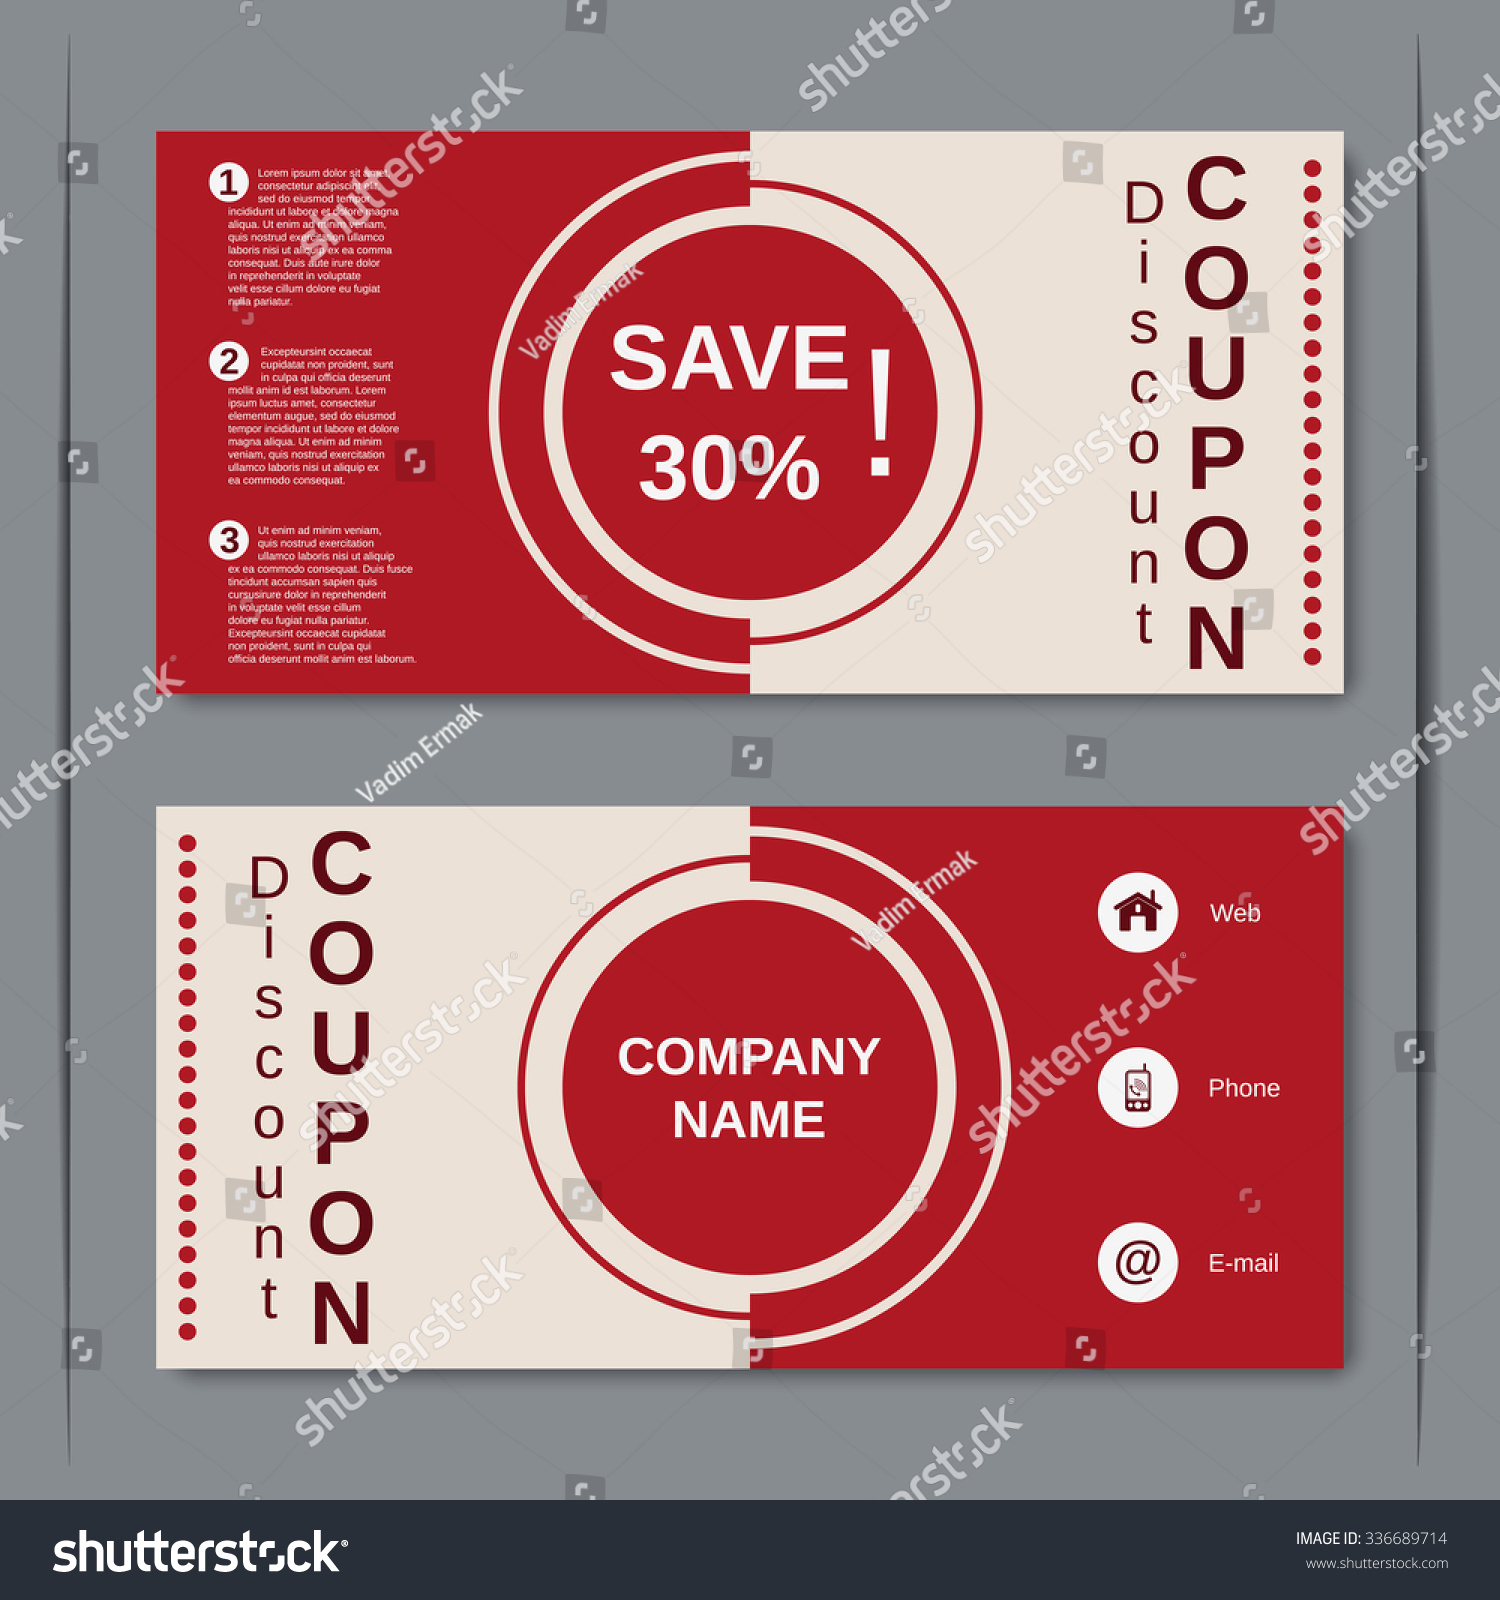 Awesome 10 Best Resume Designs Big 10 Best Resume Writers Round 15 Year Old Resume Example 16th Birthday Invitation Templates Young 18 Year Old Resumes Dark2 Page Resume Design Discount Coupon Gift Voucher Gift Certificate Stock Vector ..